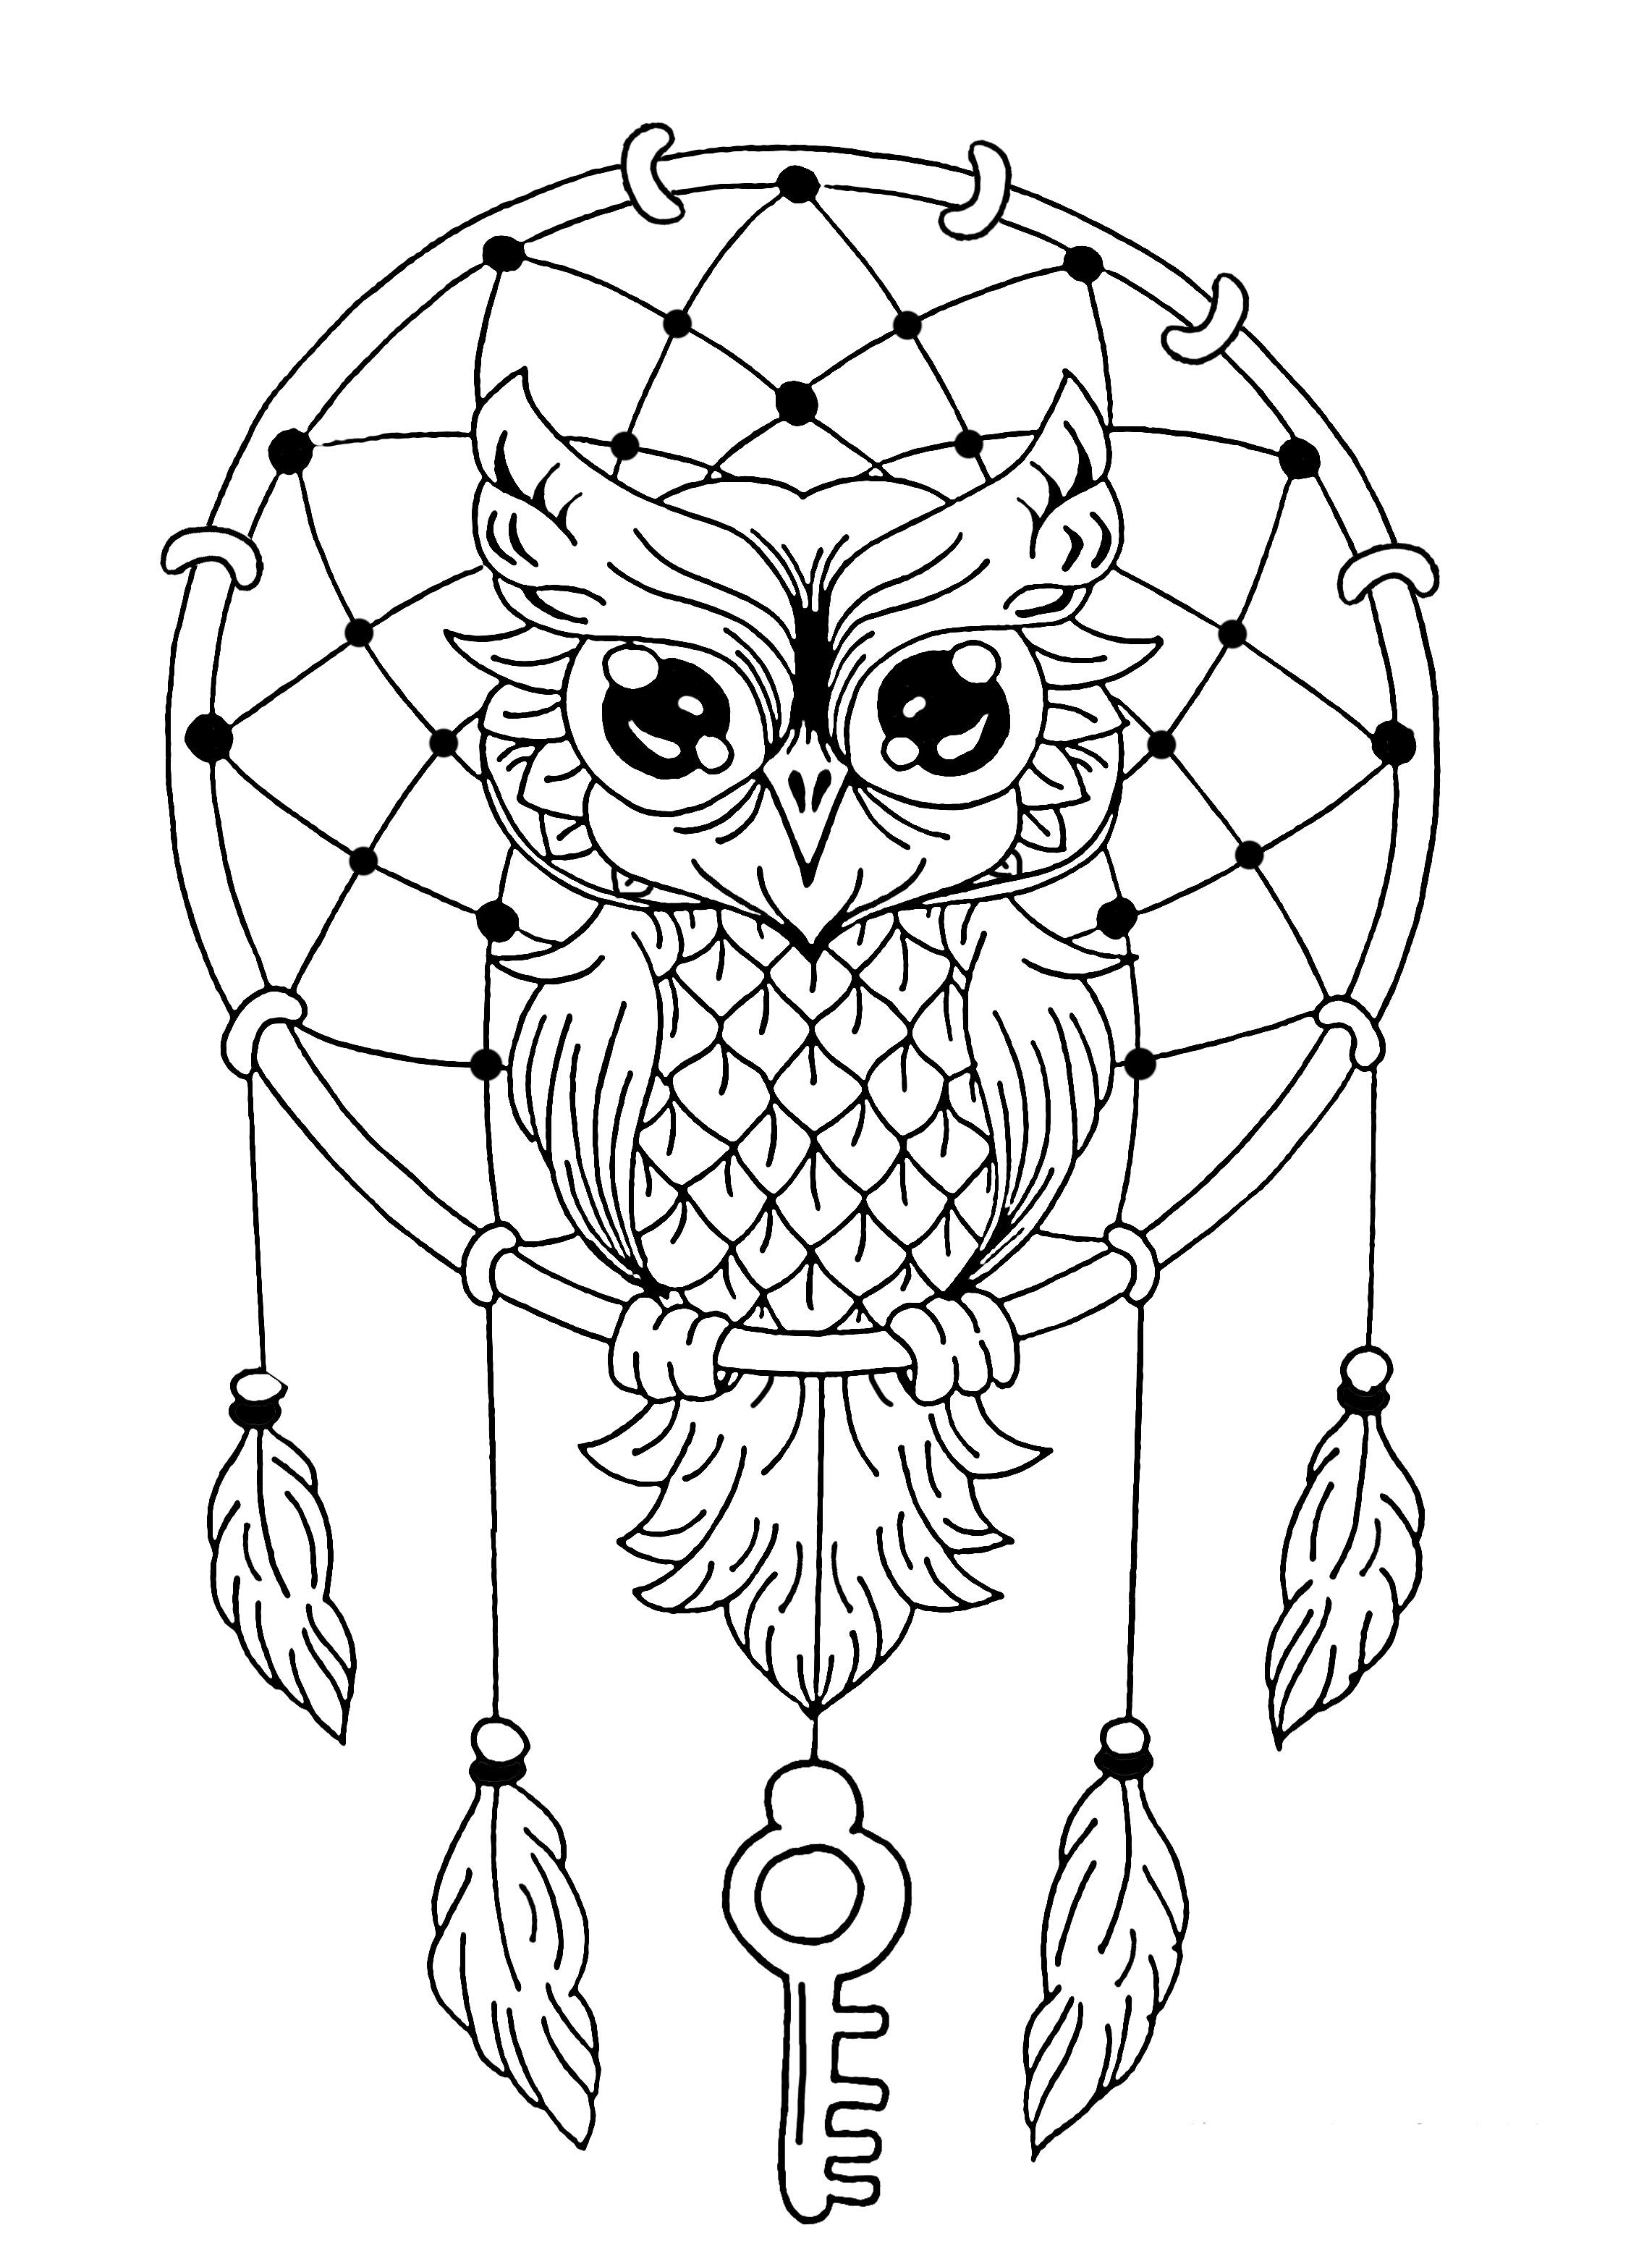 Owl Dreamcatcher The Blog Coloring Pages For Adults Just Color